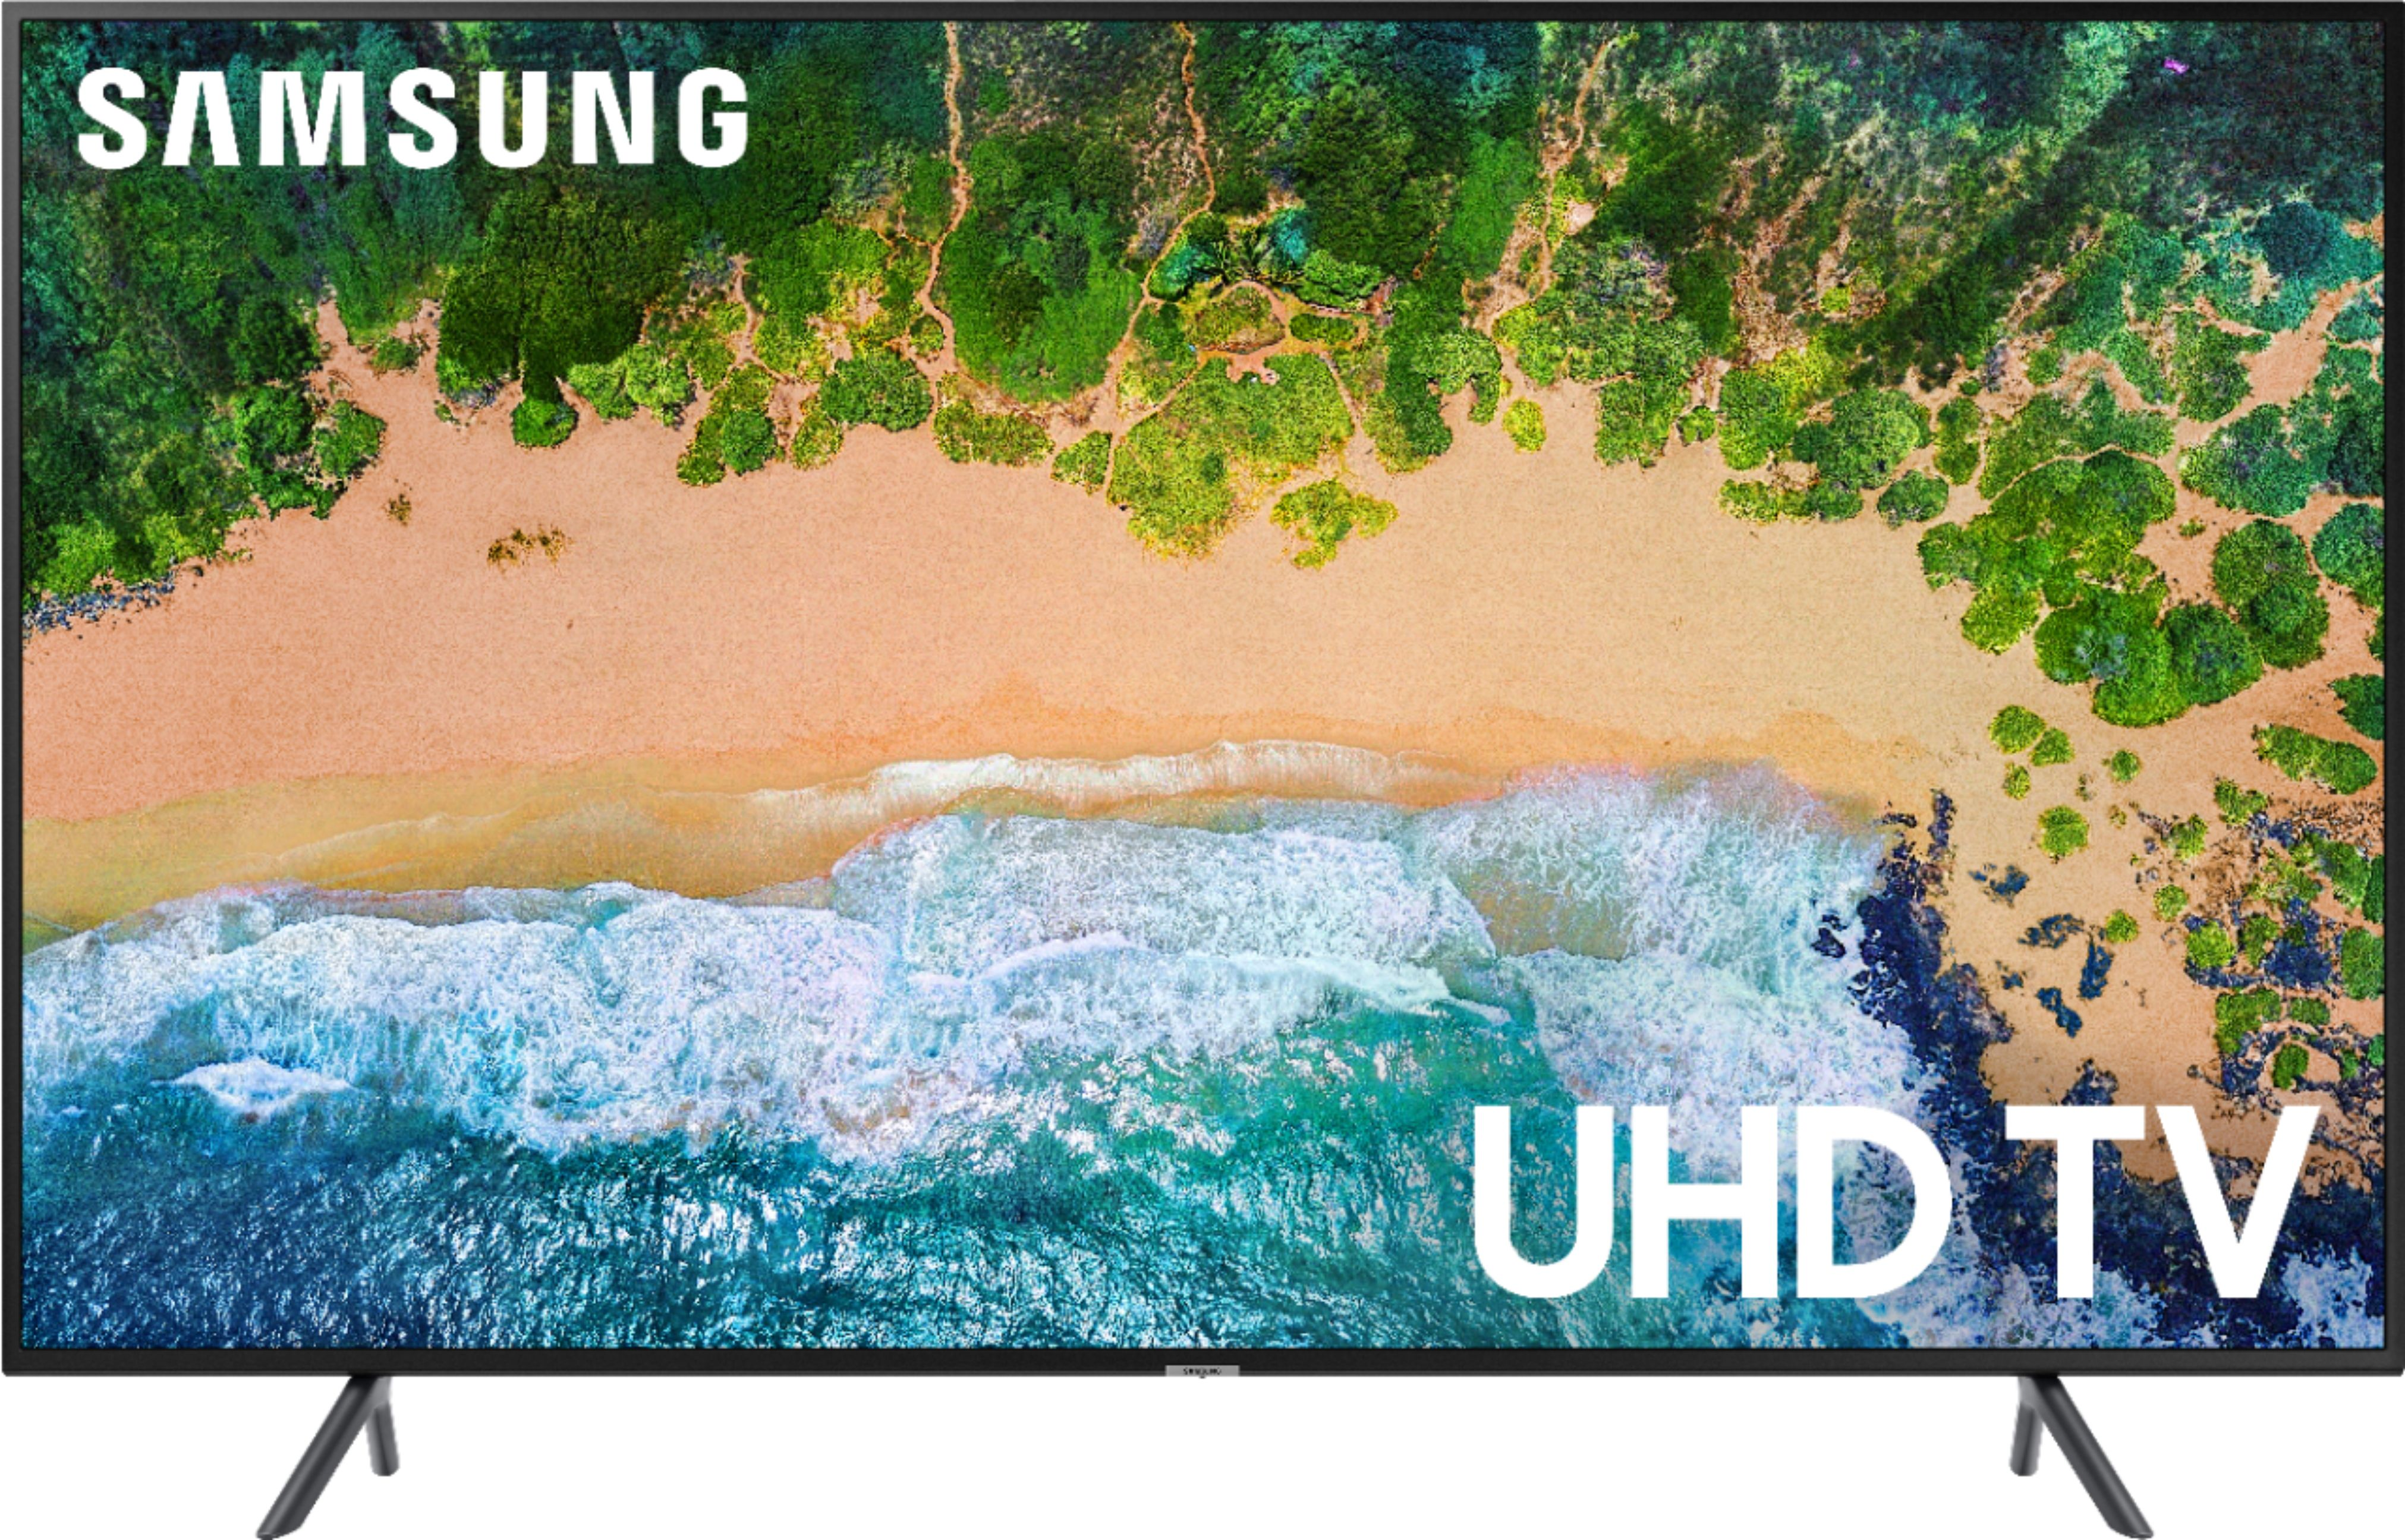 samsung 58 class led nu7100 series 2160p smart 4k uhd tv with hdr black un58nu7100fxza best buy